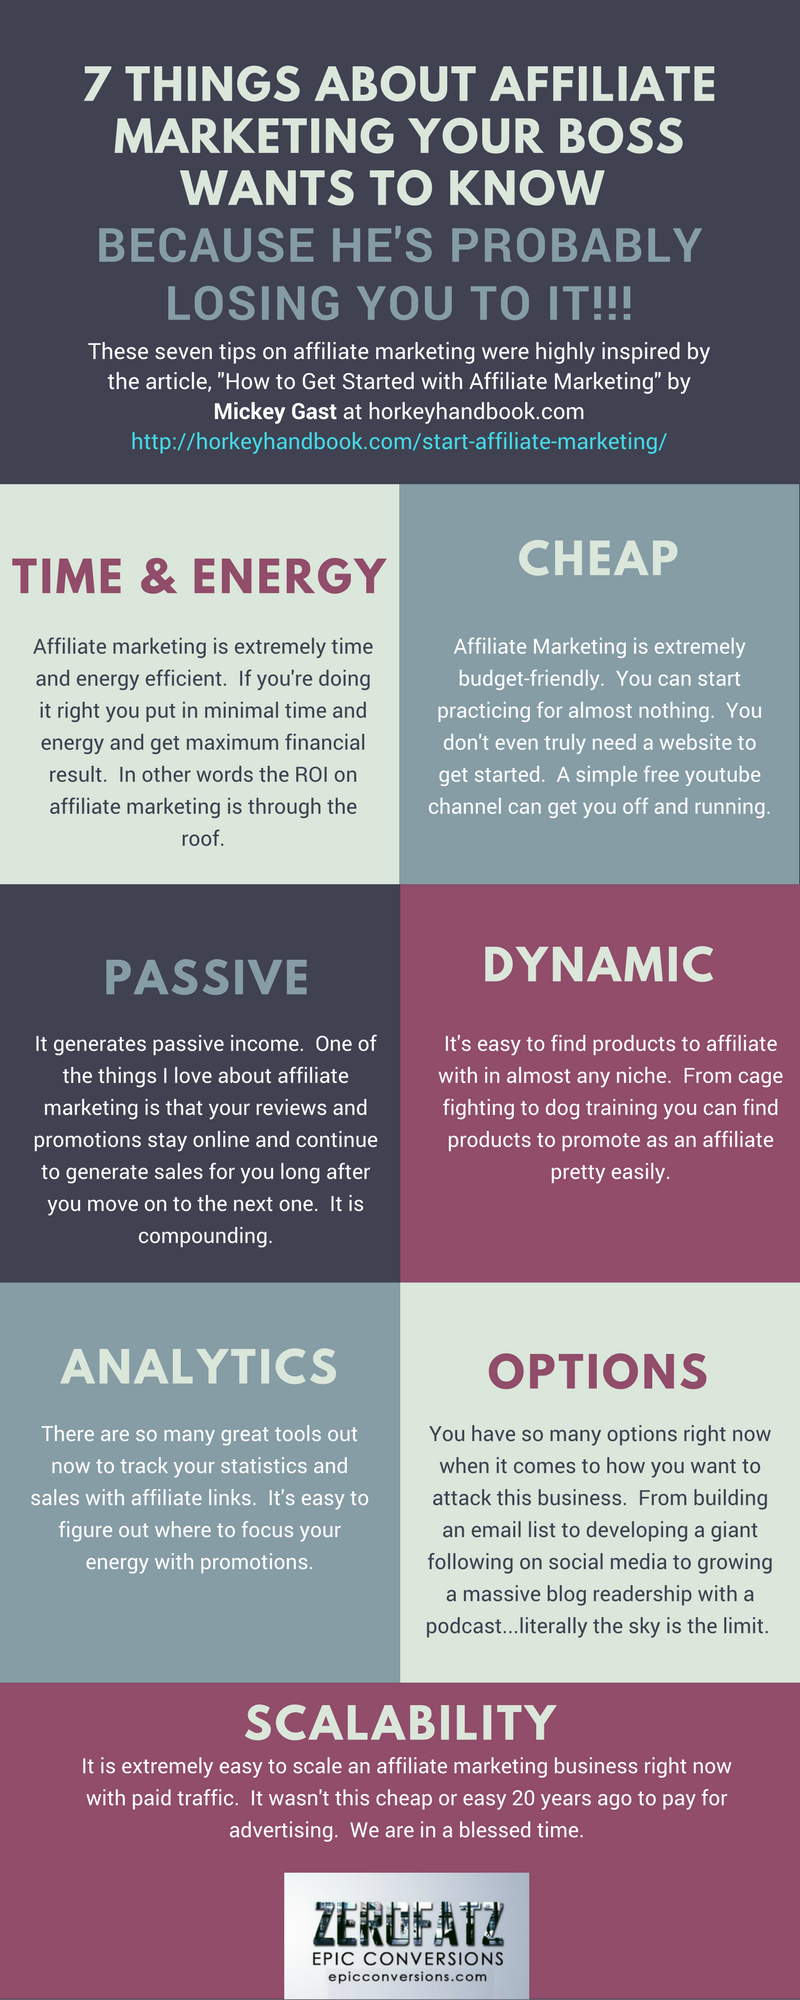 7-things-about-affiliate-marketing-your-boss-wants-to-know-1